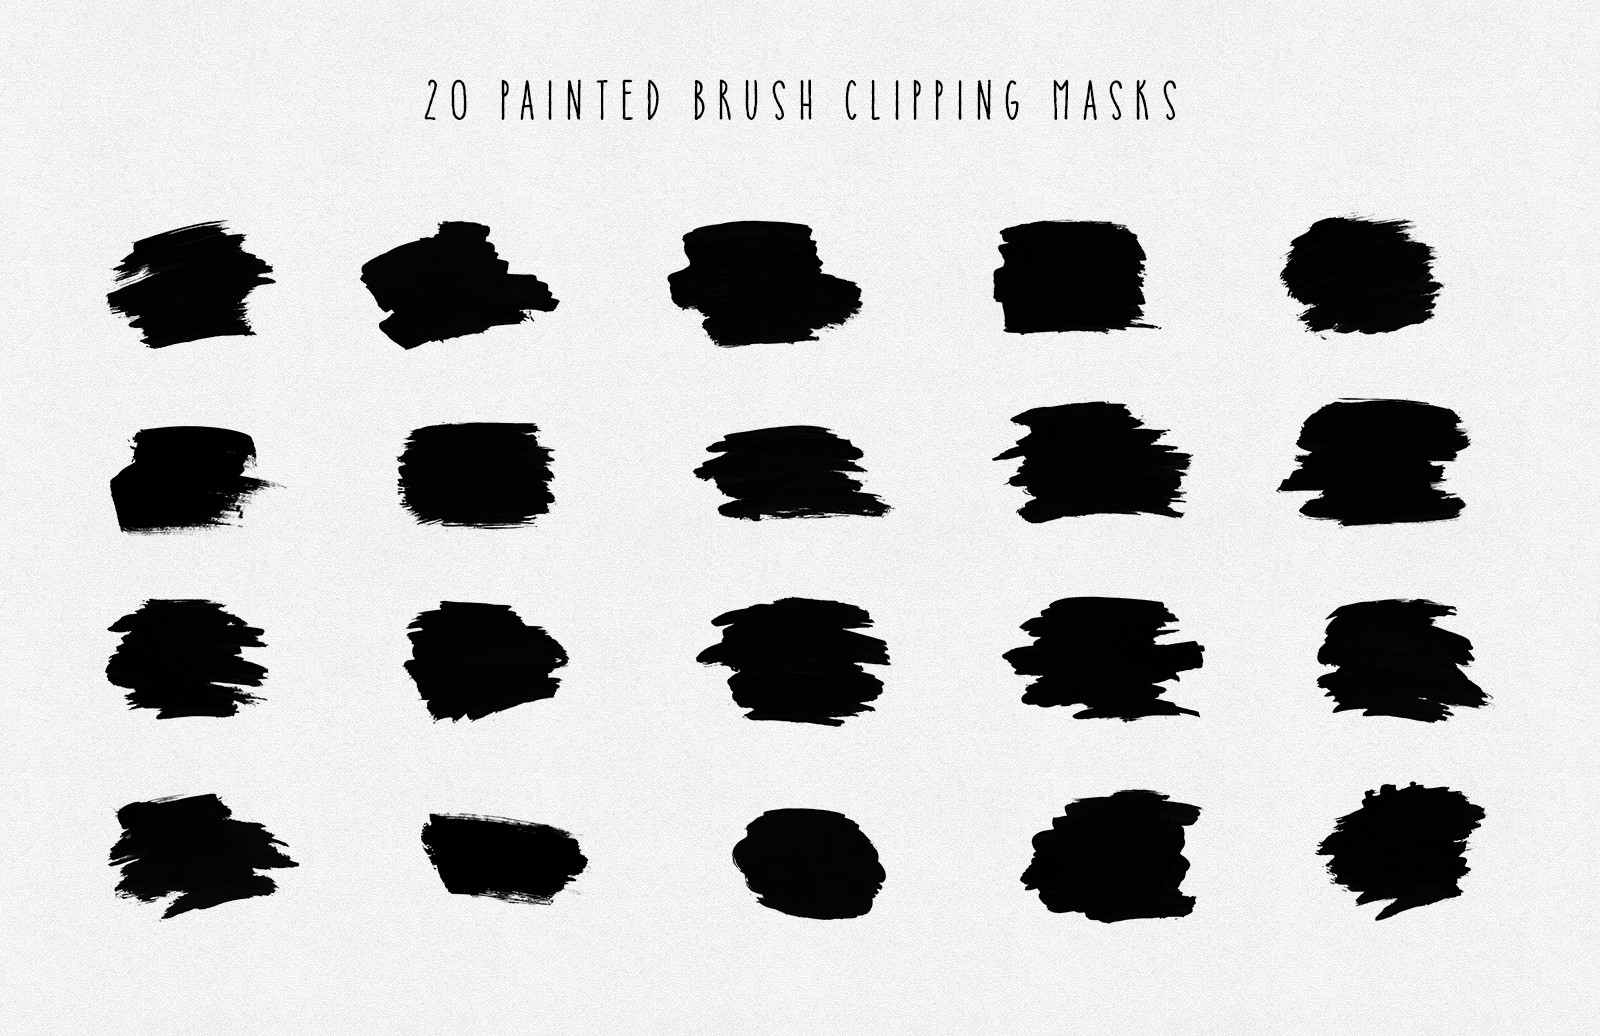 Hand  Painted  Brush  Clipping  Masks  Preview 5